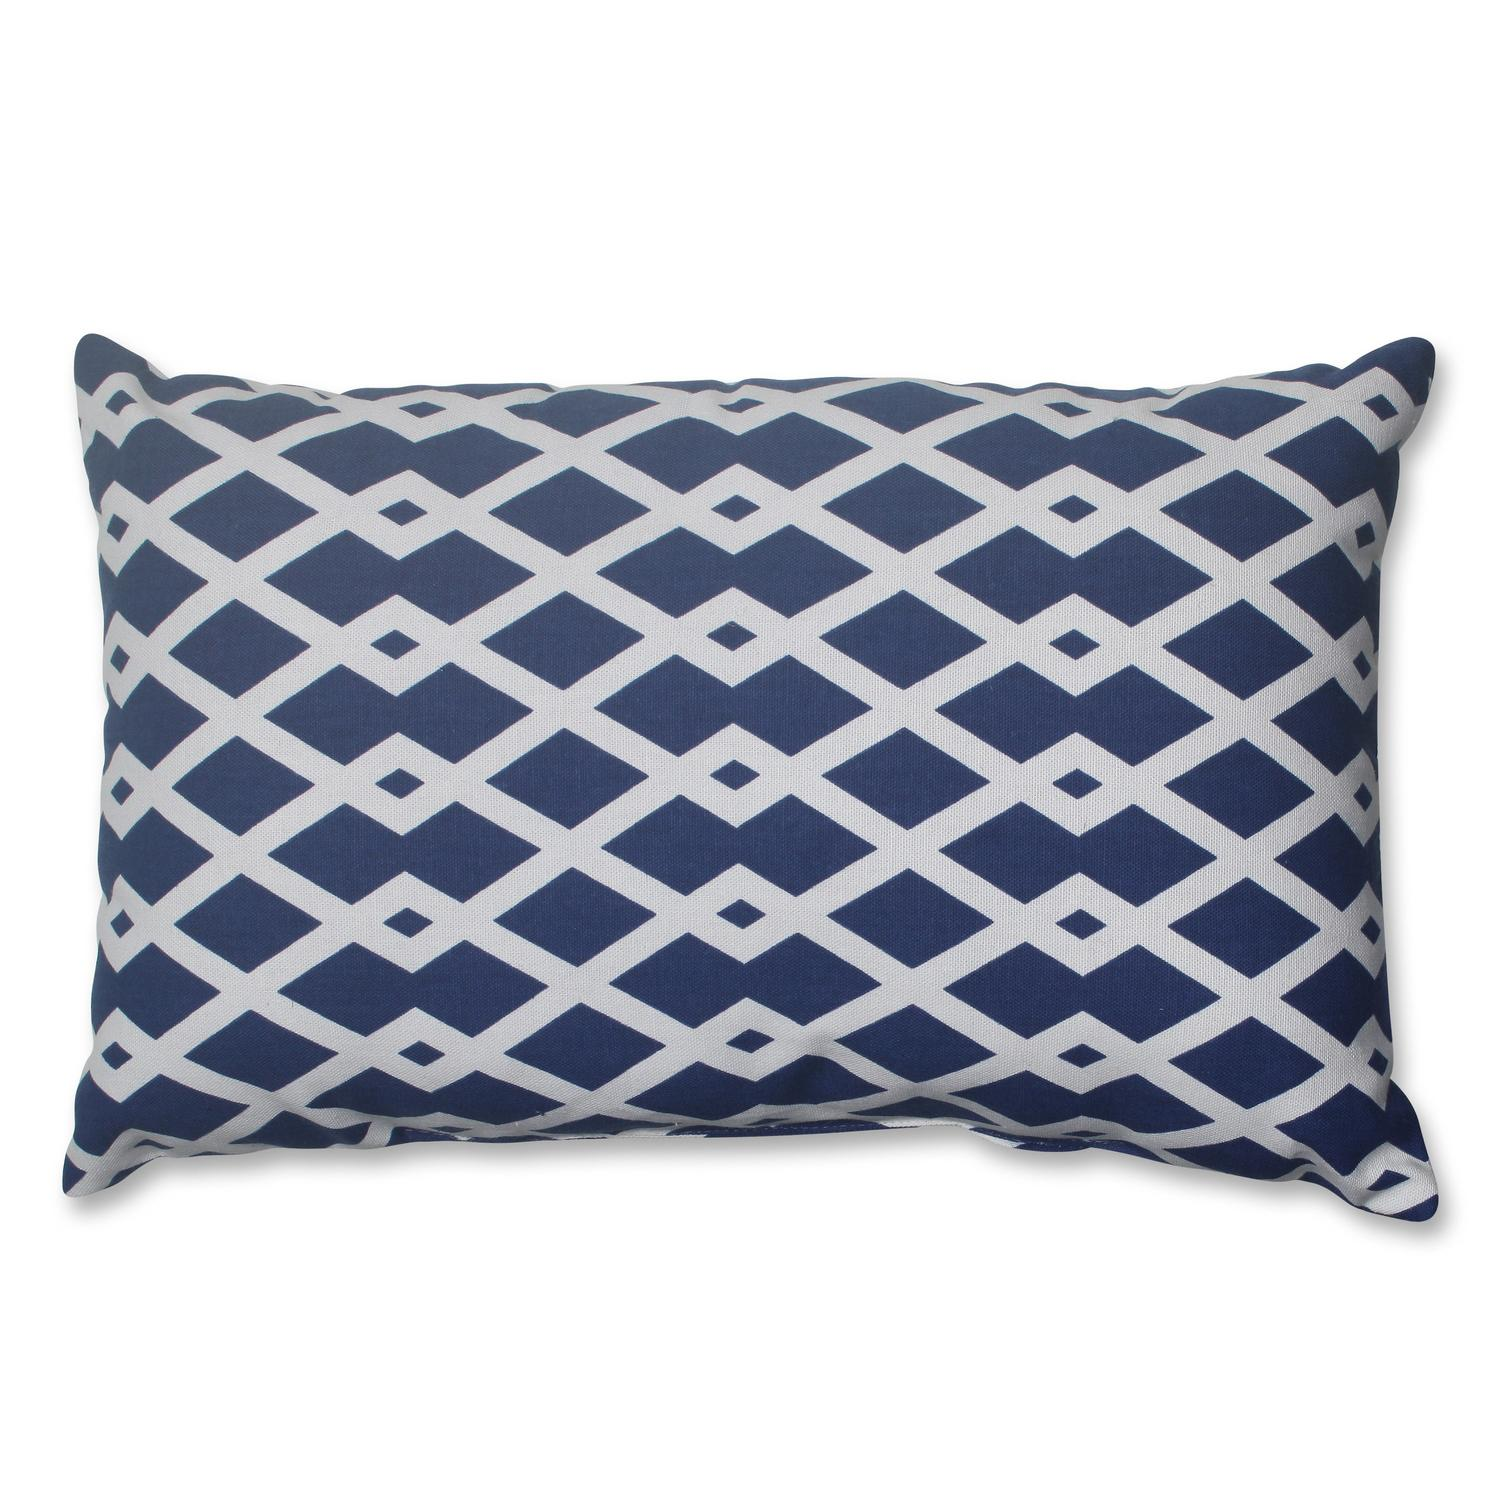 "18.5"" Cascading Diamonds Navy Blue and White Decorative Rectangular Throw Pillow"